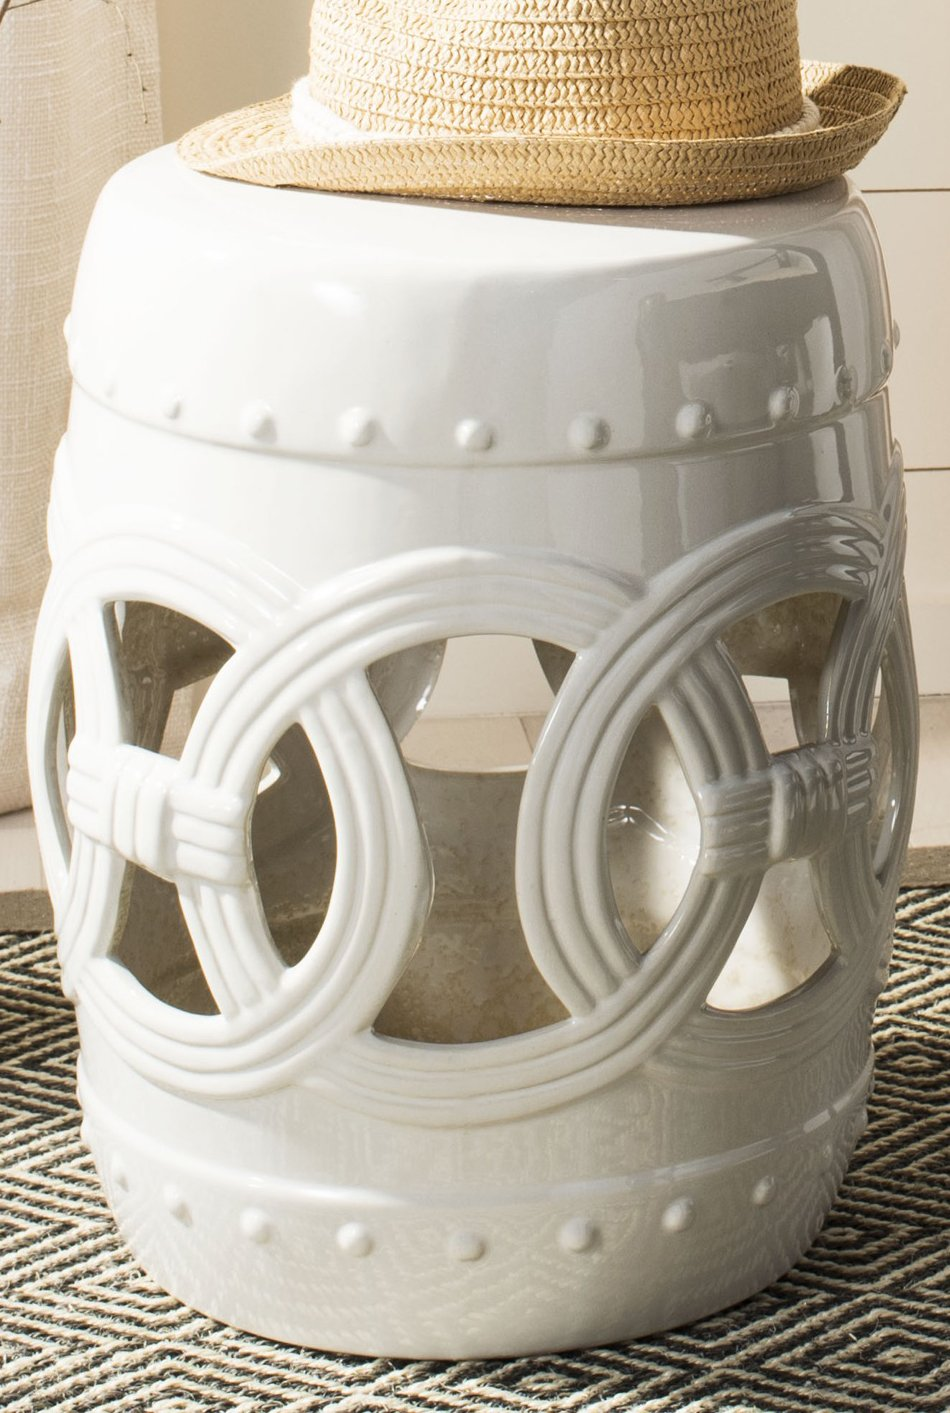 Safavieh Castle Gardens Collection Double Coin White Ceramic Garden Stool by Safavieh (Image #1)